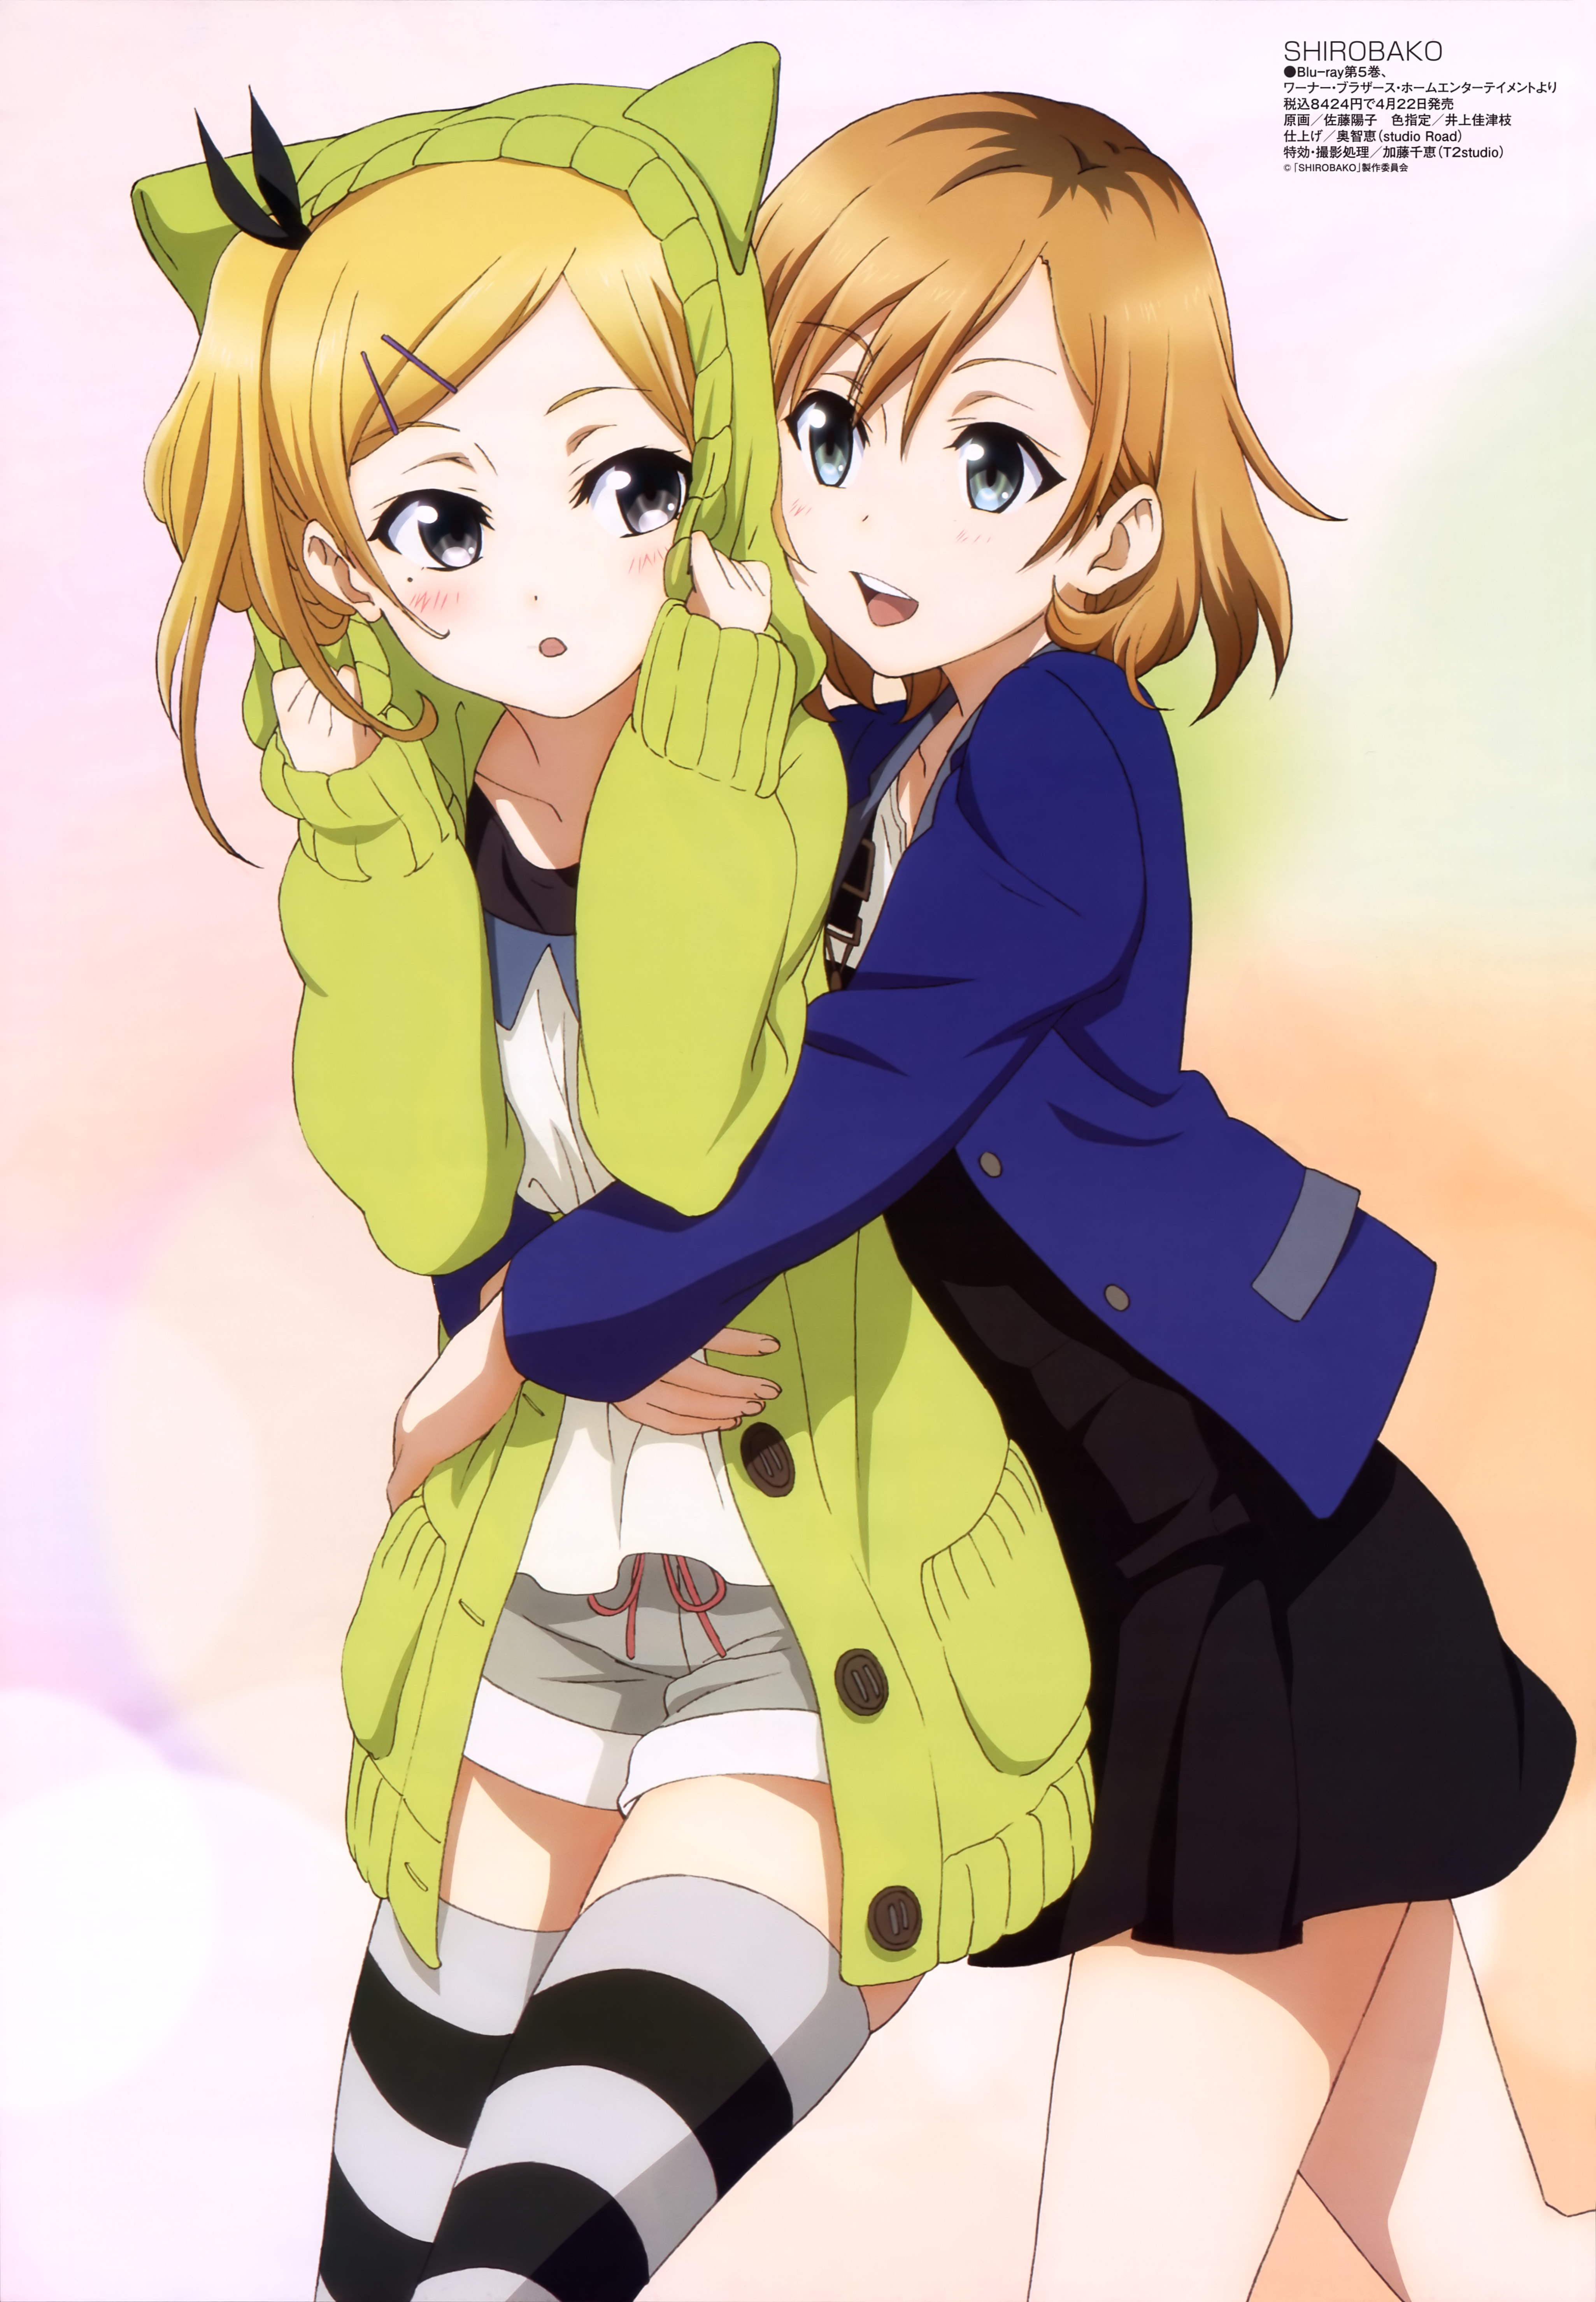 http://static.zerochan.net/SHIROBAKO.full.1856858.jpg